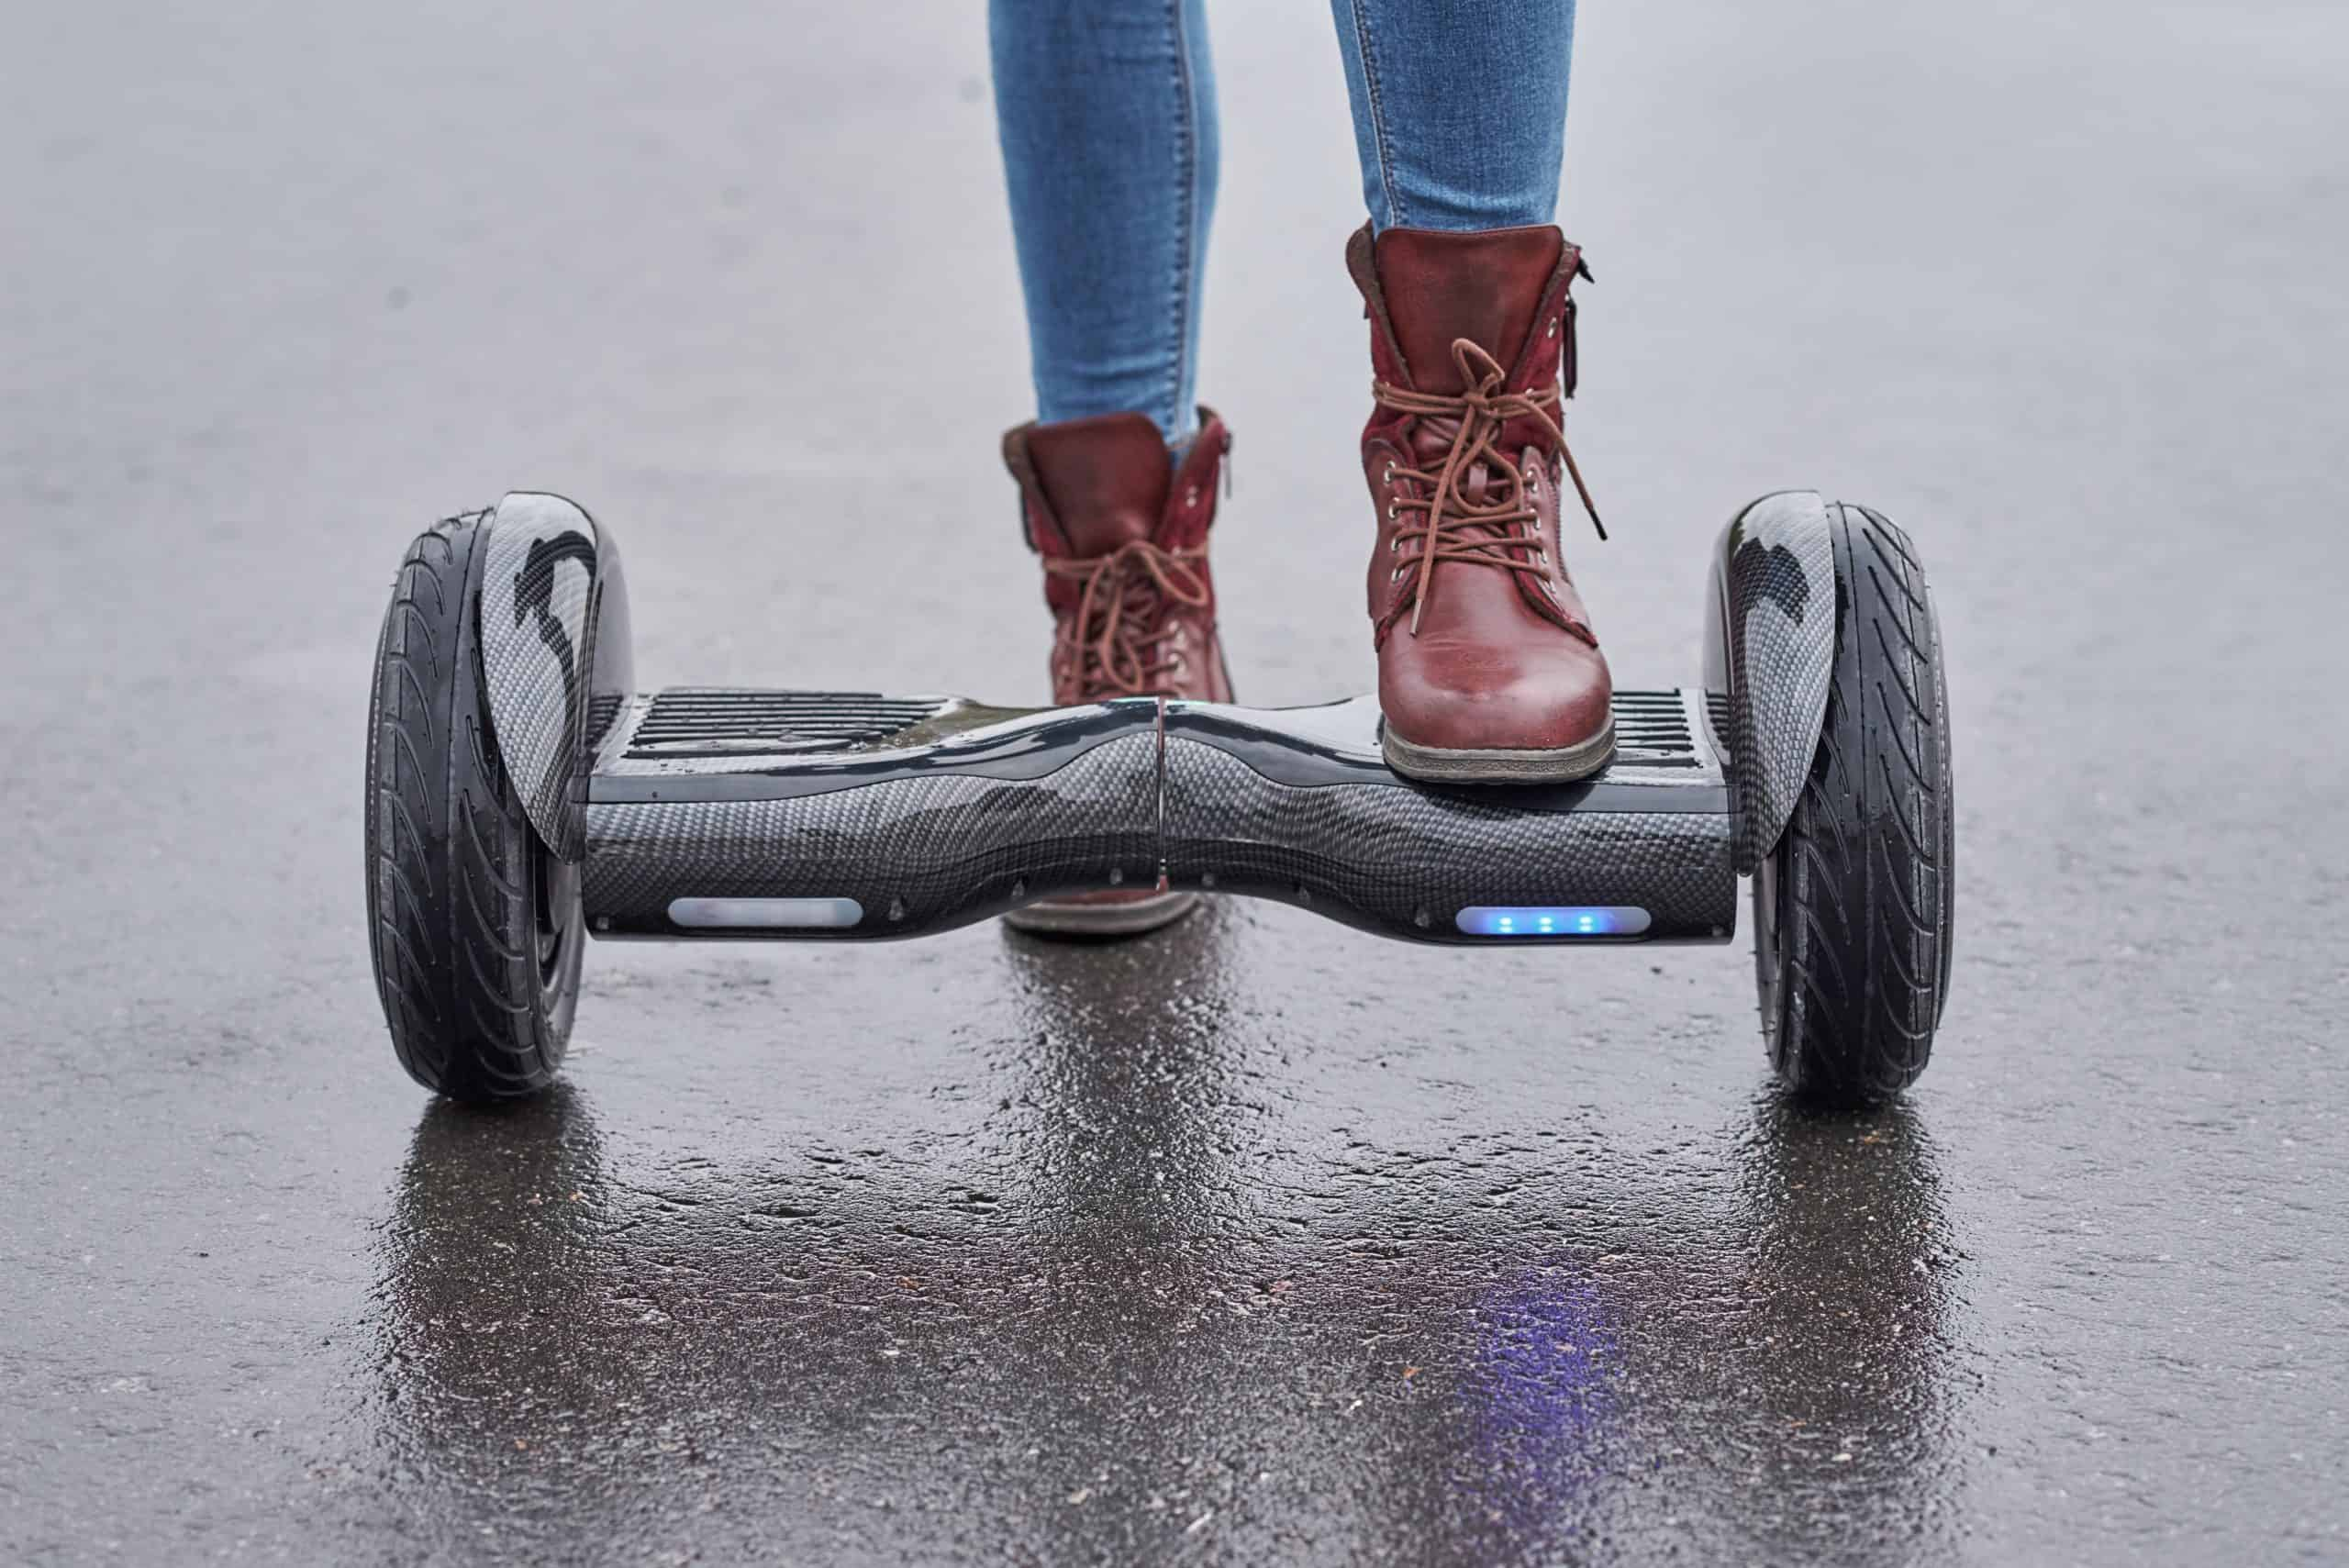 My Top 5 Hoverboards Under $200